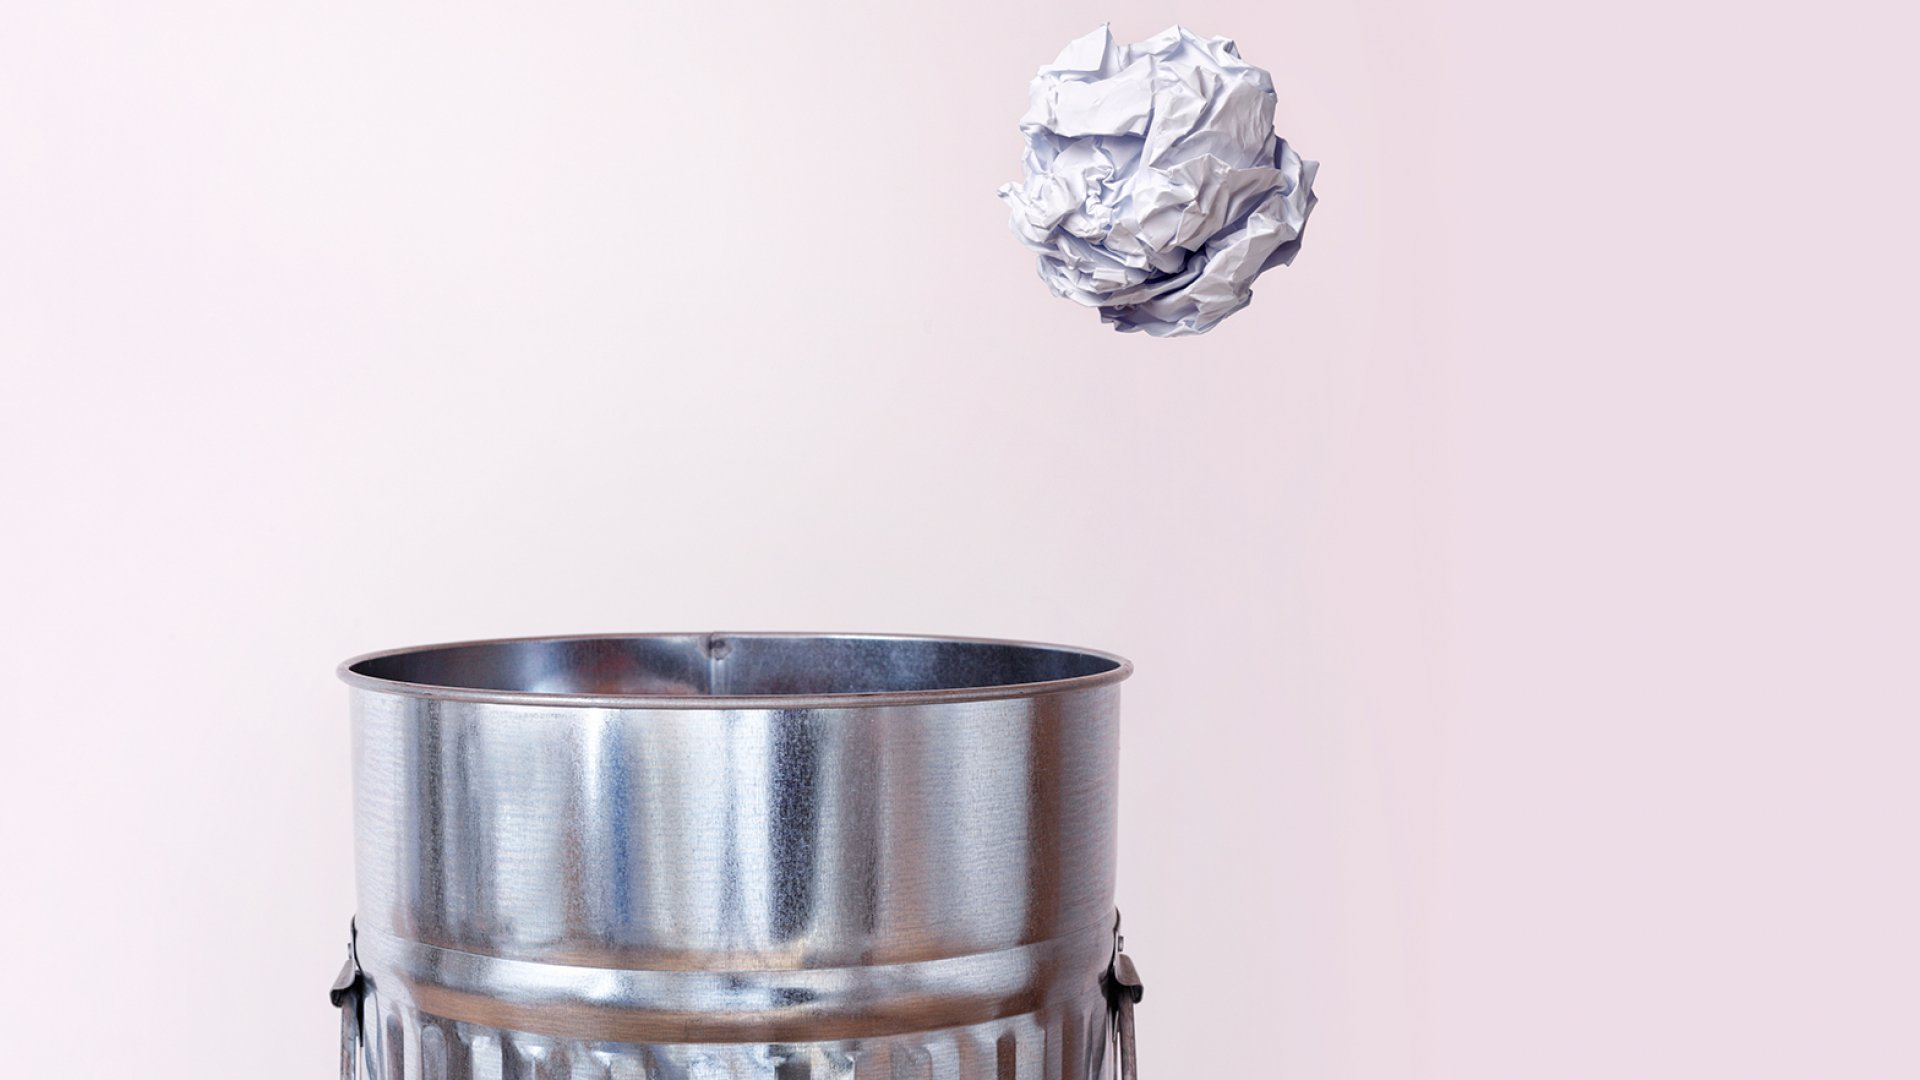 Want to Immediately Become More Successful? Stop Using These 4 Toxic Words